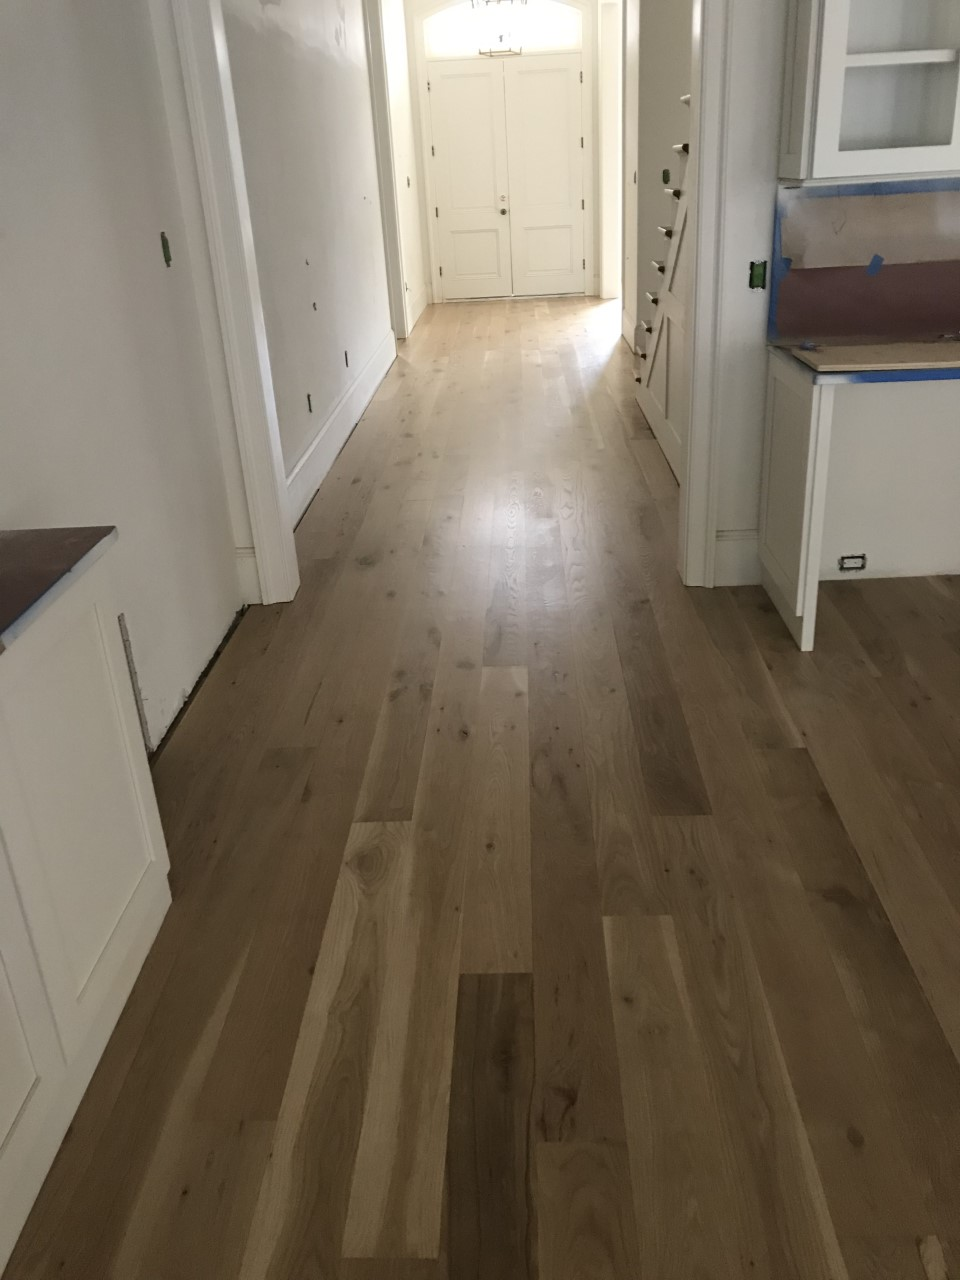 This is a photo of a kitchen with white oak flooring with a satin finish. It has a weather washed appearance.